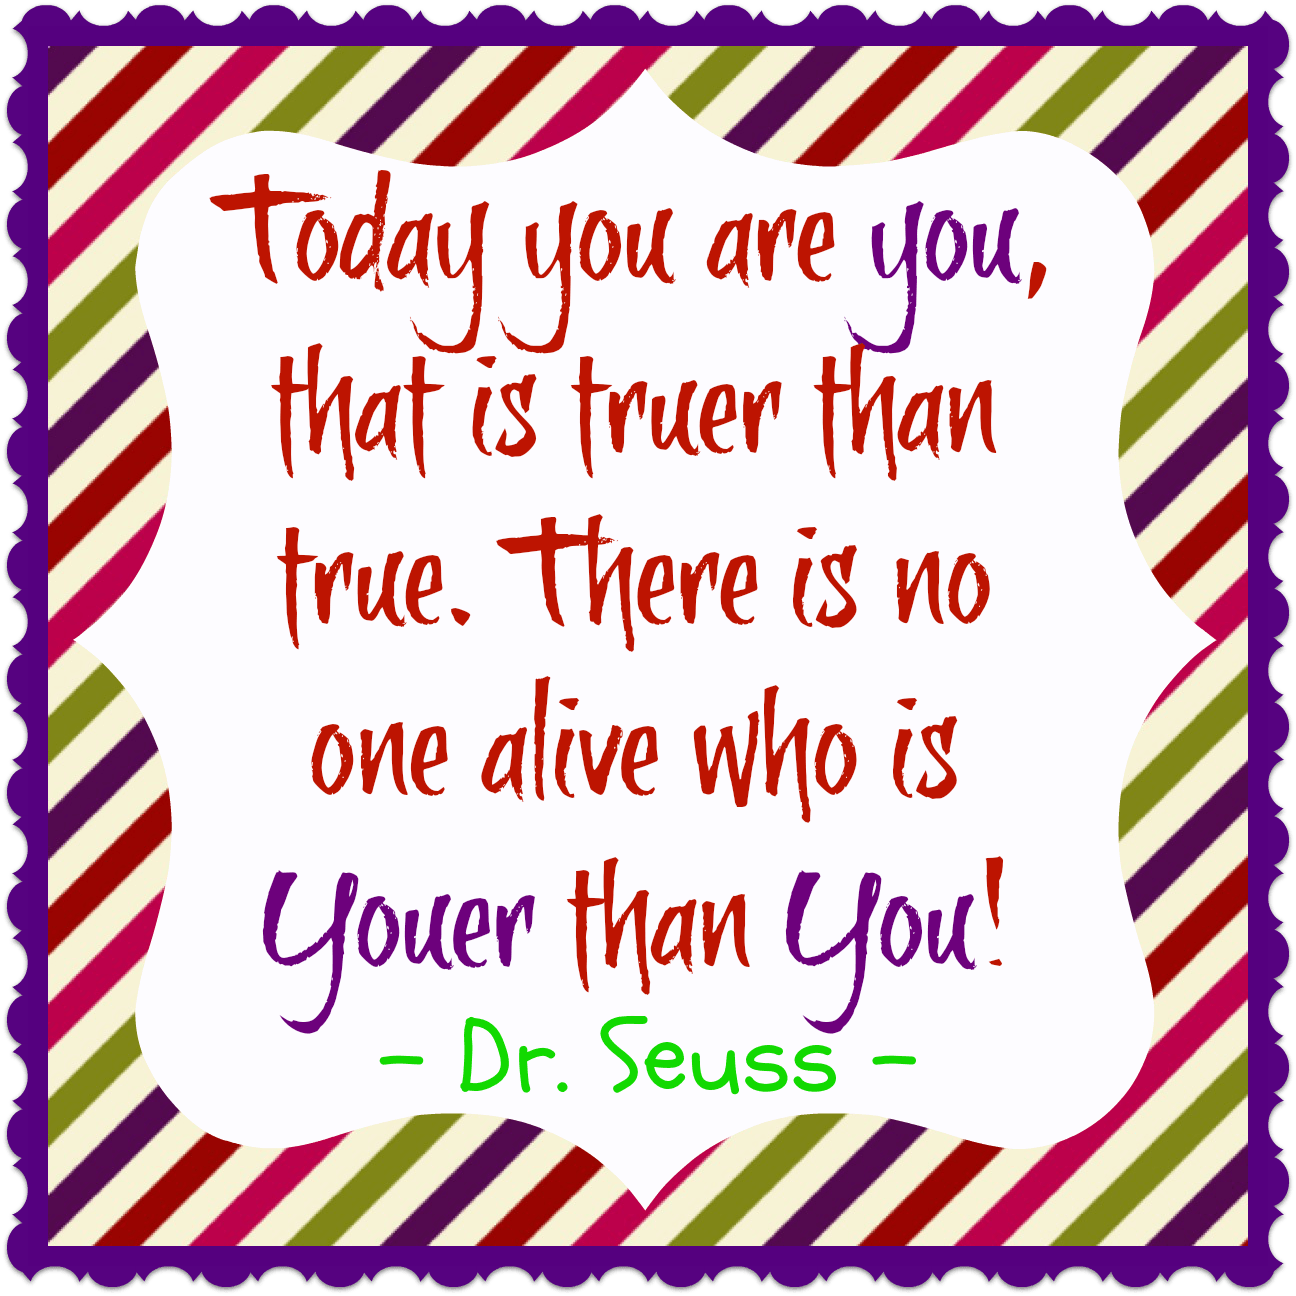 Dr Seuss Who Is He: Quotable // From Dr. Seuss